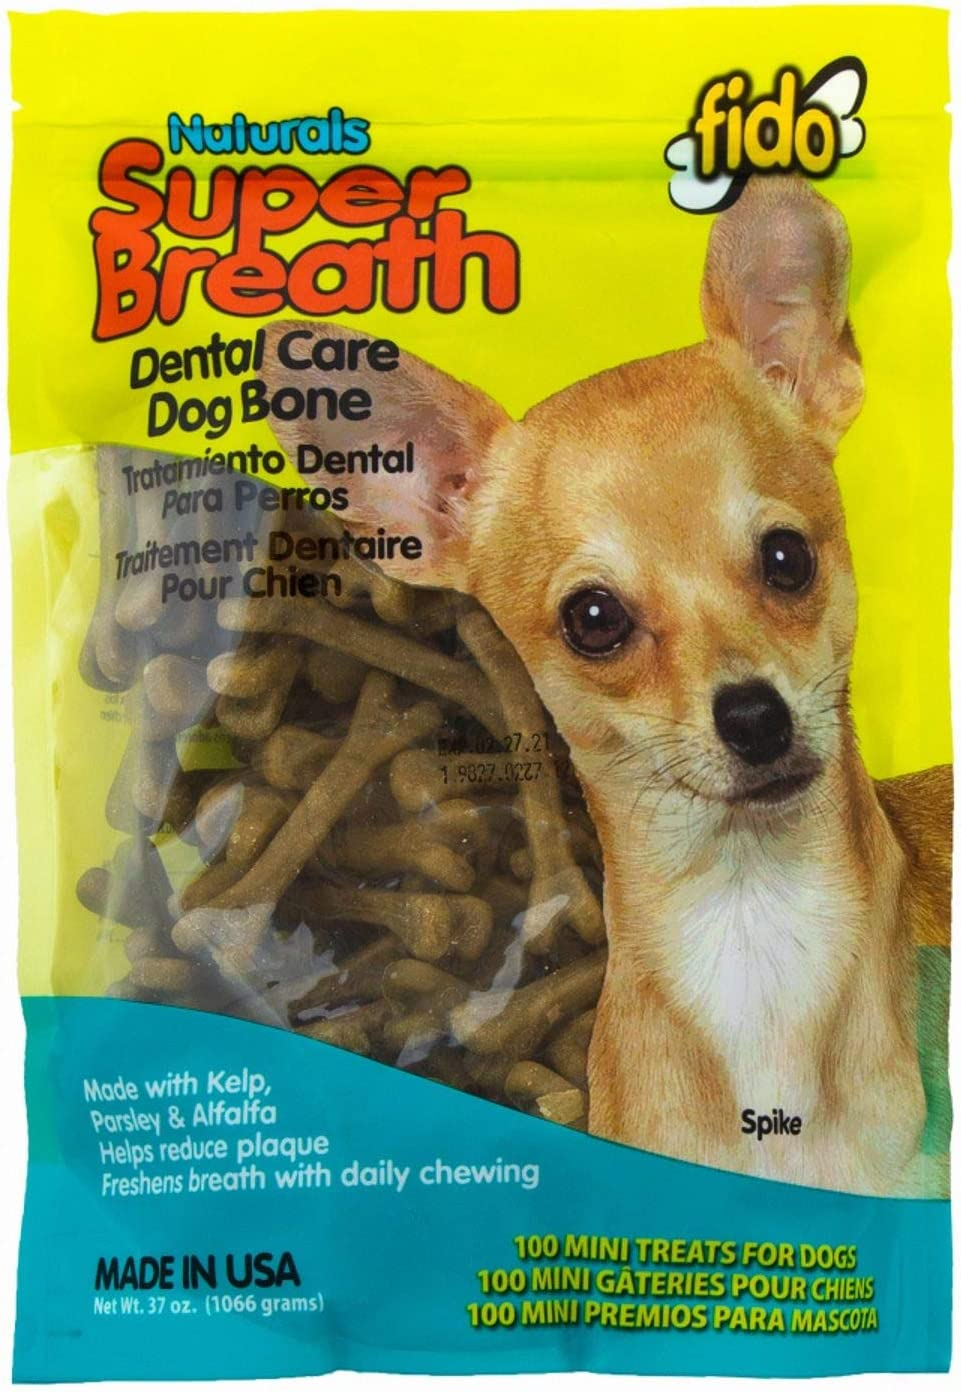 Fido Super Breath Dental Care Bones for Dogs, Made with Kelp, Parsley and Chlorophyll – Naturally Freshens Breath, Reduces Plaque and Whitens Teeth